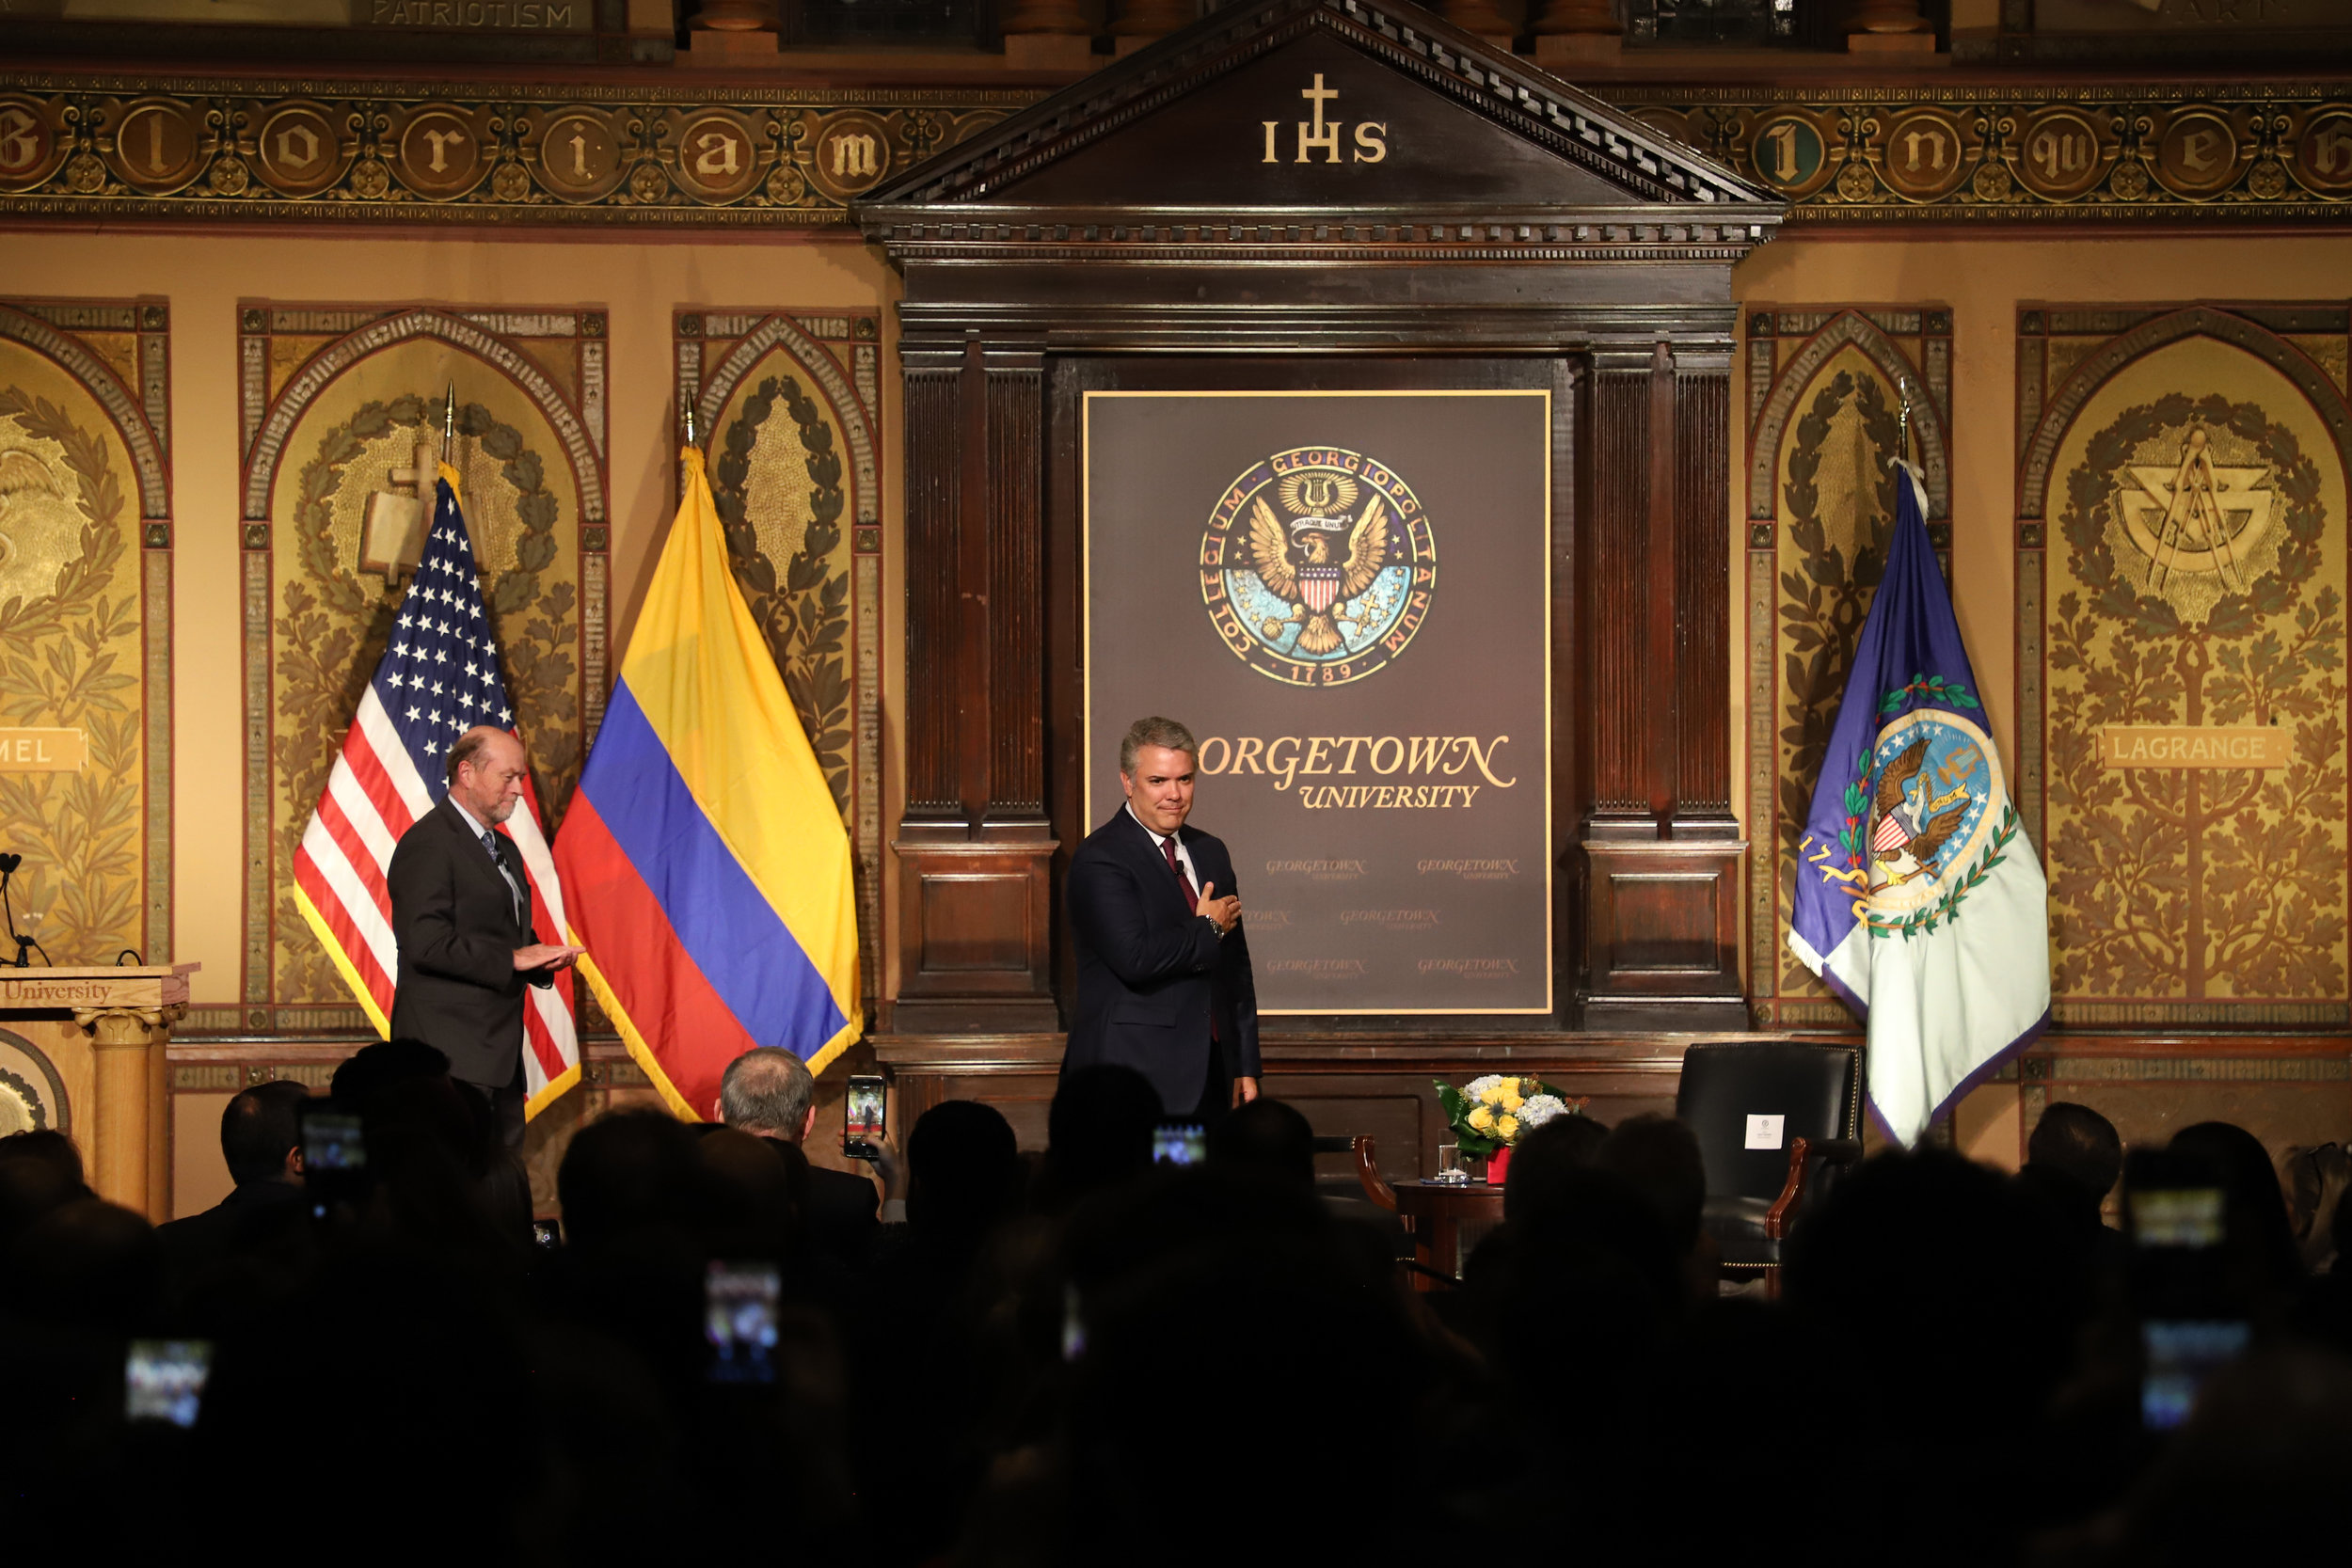 President Duque greets the audience at Georgetown University. (Bryce Couch, SFS '19)